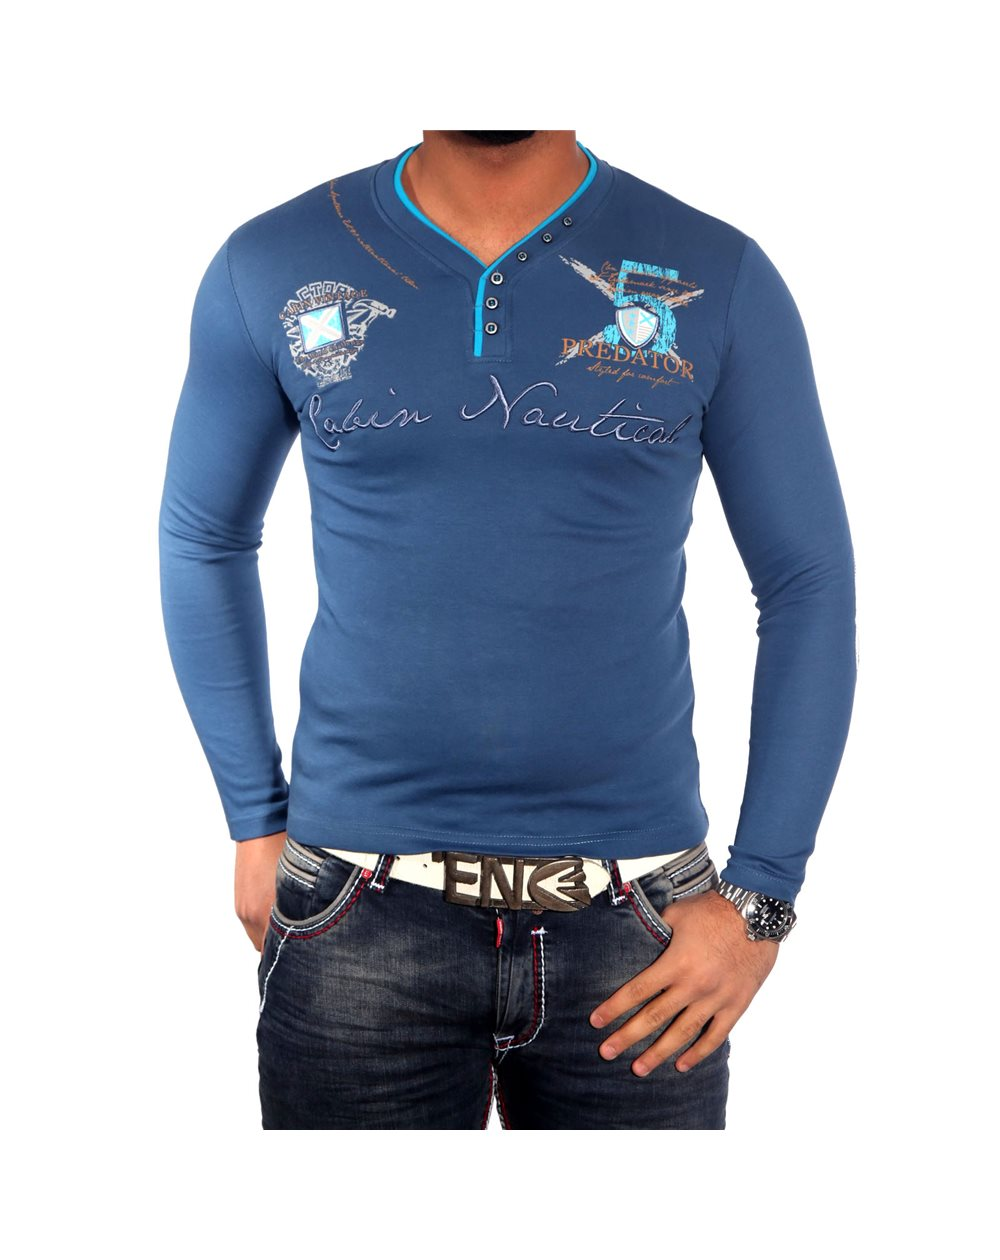 Subliminal Mode - Tee shirt homme manches longues col arrondi Angleterre Pull SBC137